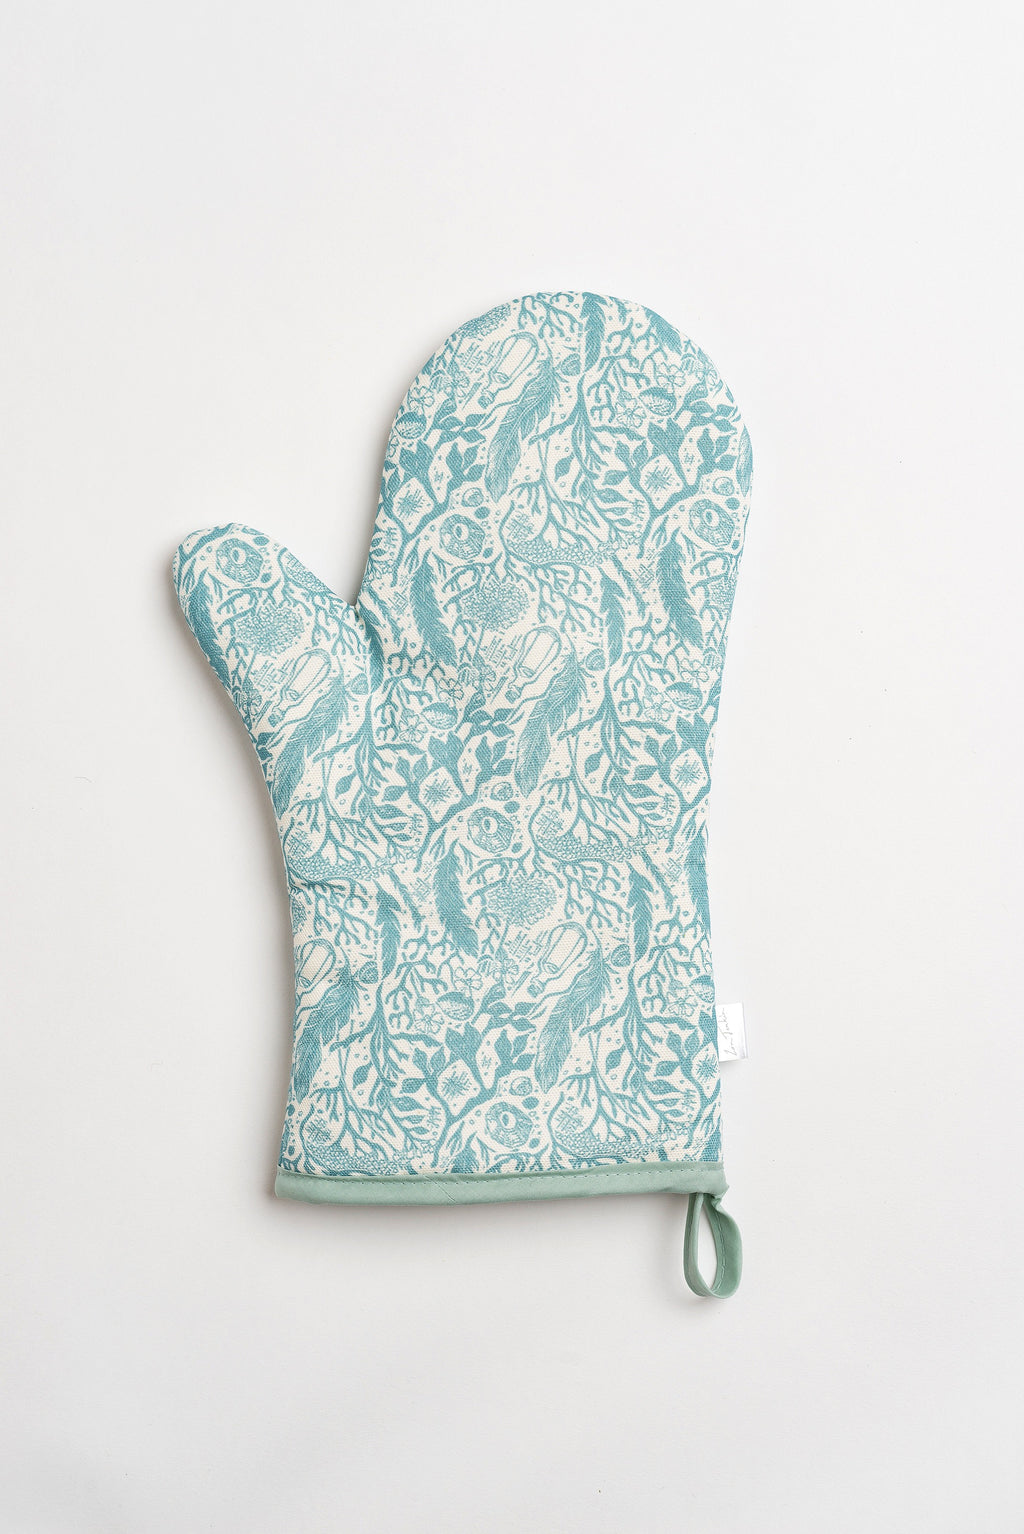 Beachcomber Single Oven Glove Mitt